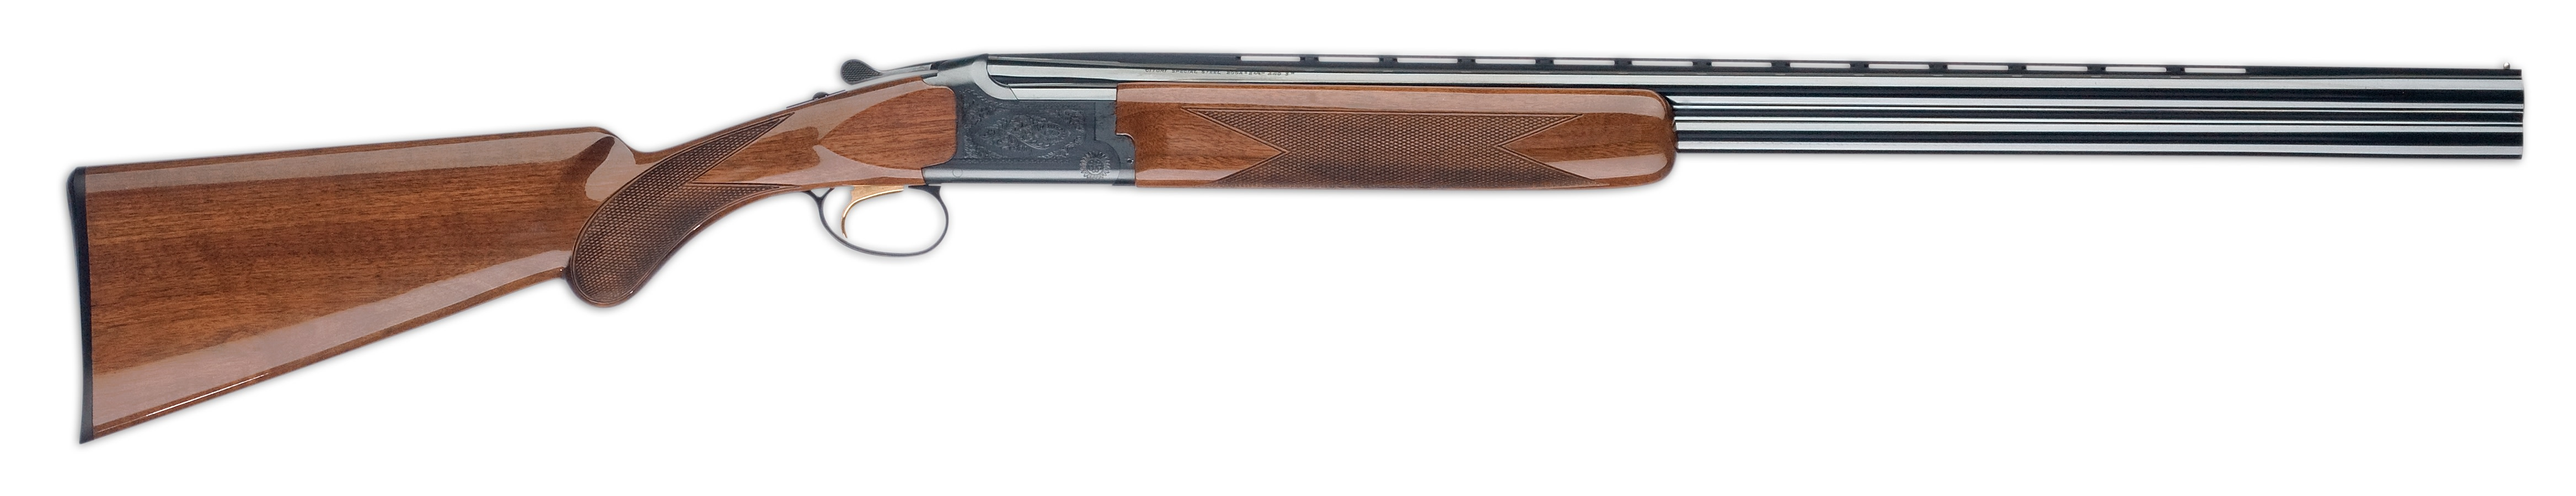 Browning Citori Lightning Over/Under 3'' 20 Gauge 26'' Polished Blued - Black Walnut